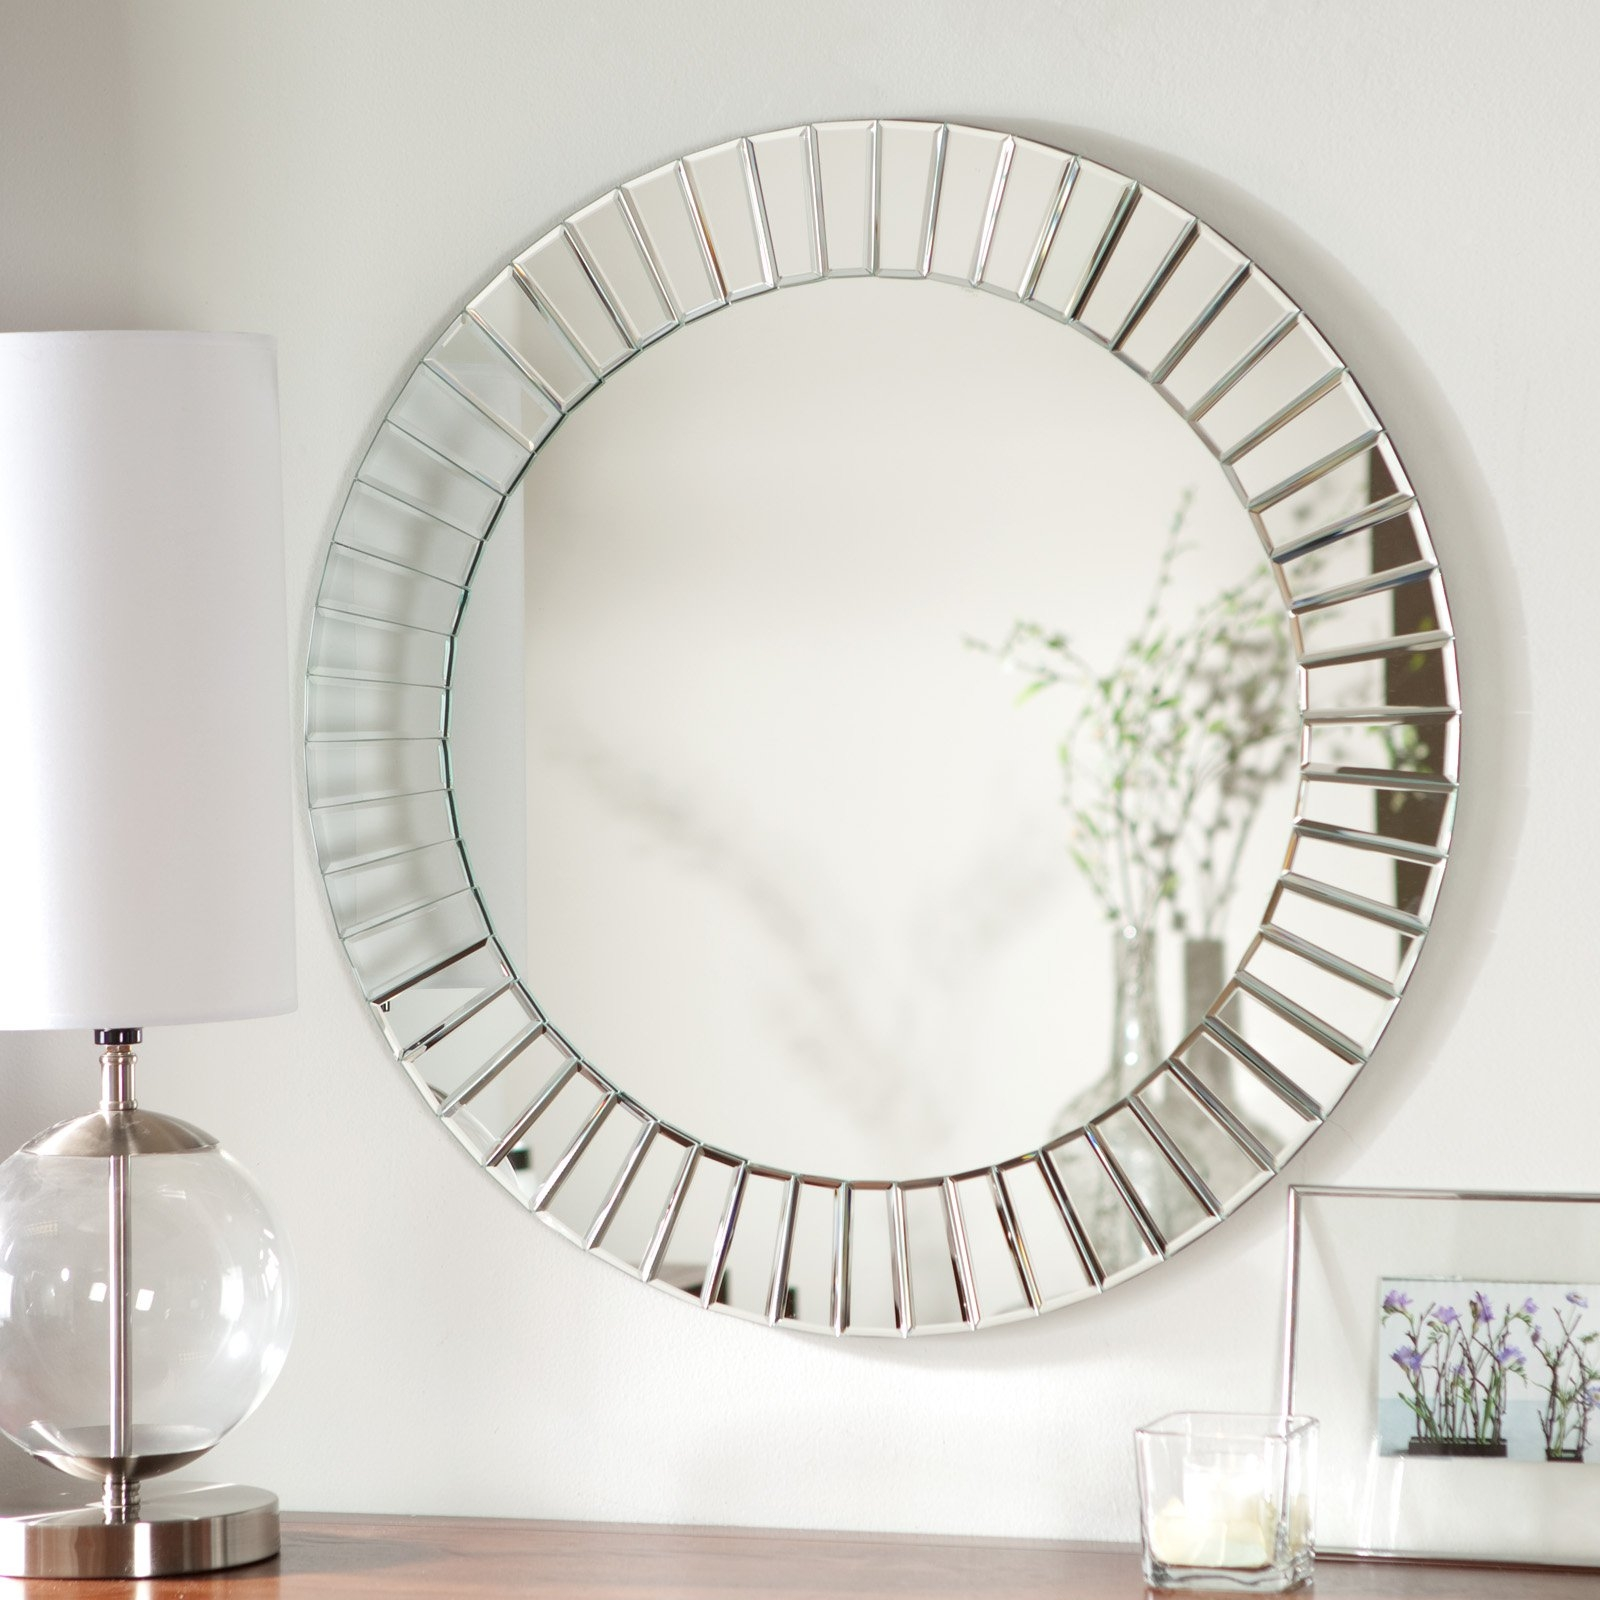 Where To Buy Large Mirrors For Walls Mirror Design Ideas Within Large Mirror Sale (Image 15 of 15)